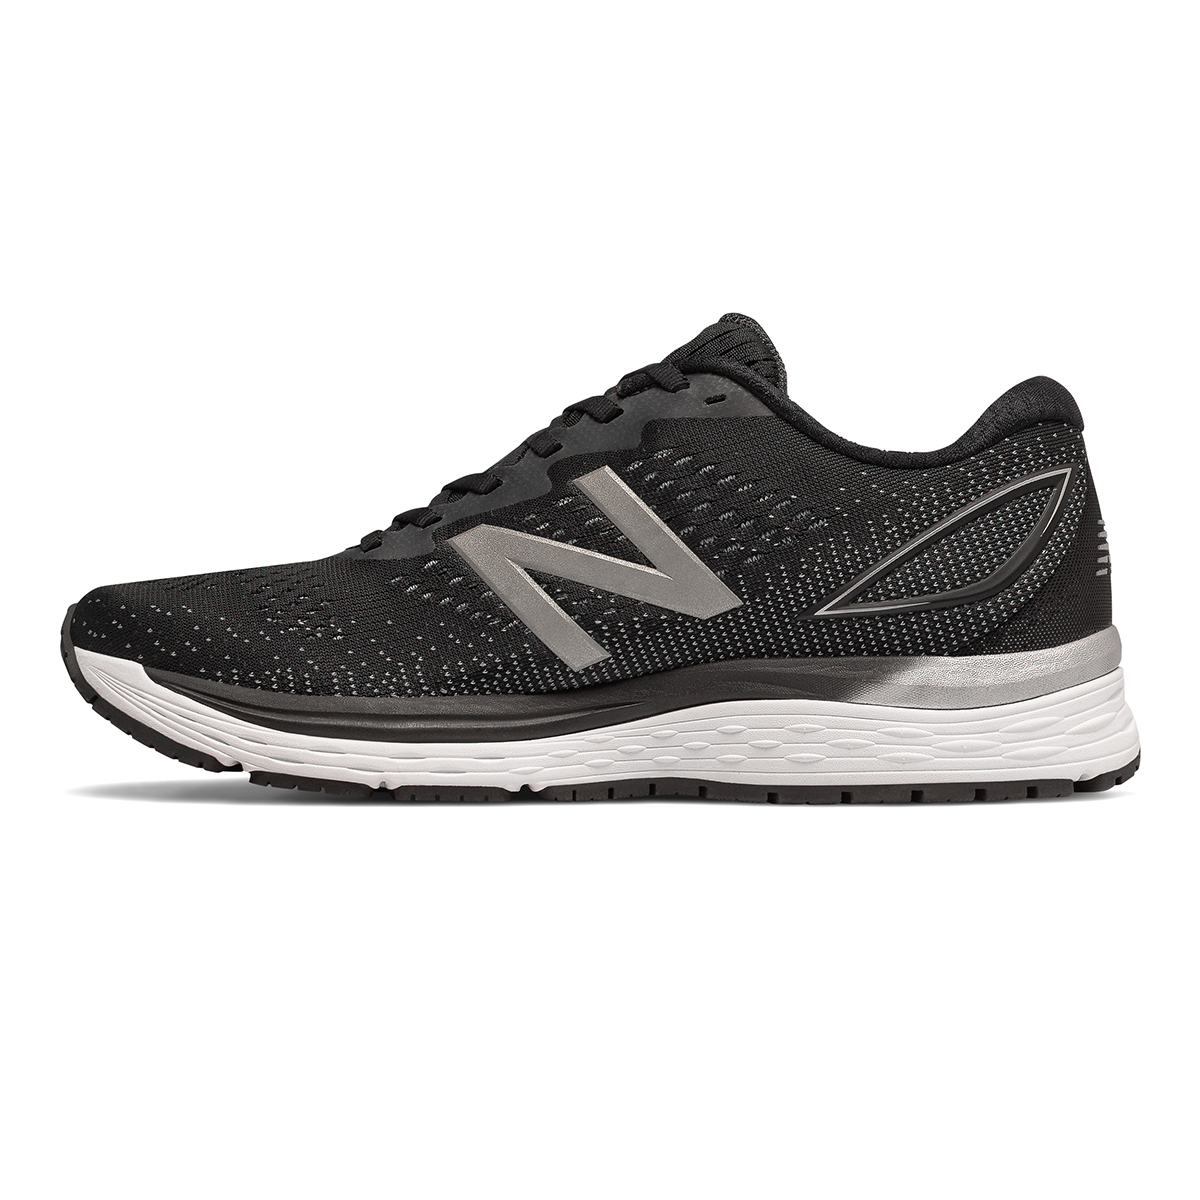 Men's New Balance 880V9 Running Shoe - Color: Black / Steel (Regular Width) - Size: 8, Black / Steel, large, image 2